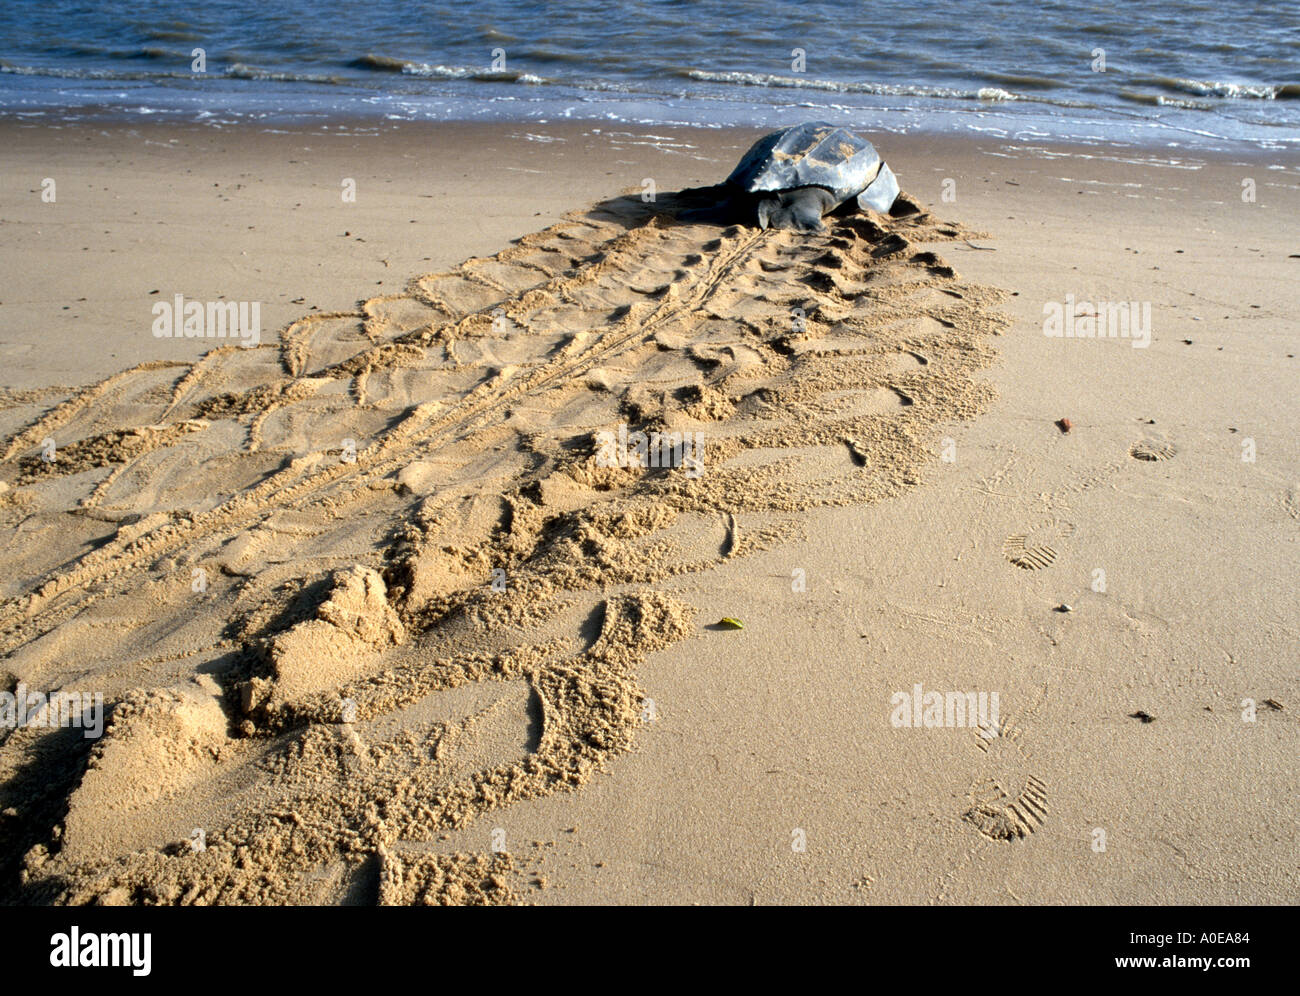 Sea Turtle going to the sea in Suriname after laying eggs on the beach - Stock Image